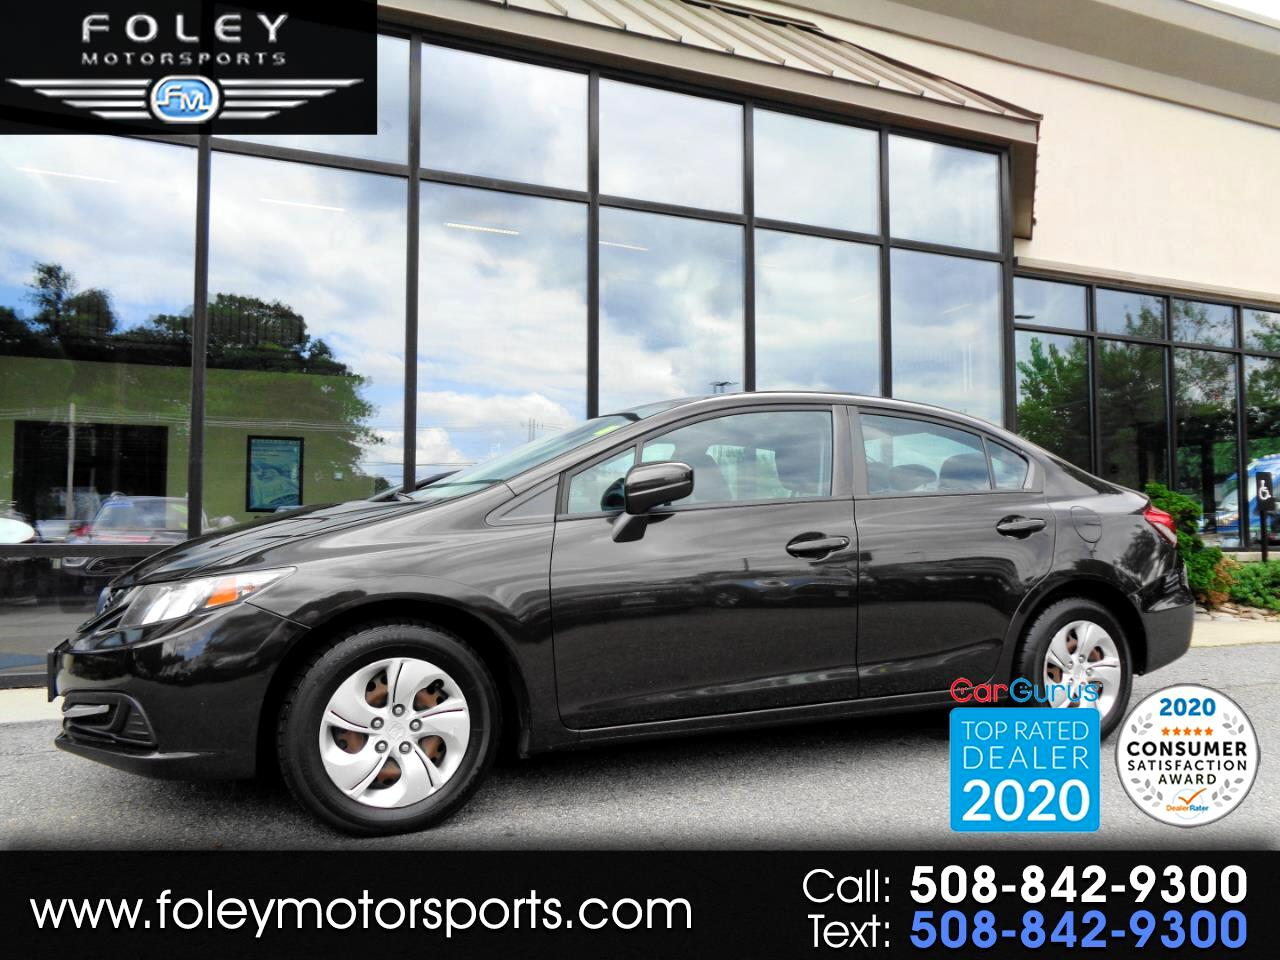 Honda Civic Sedan 4dr CVT LX 2014